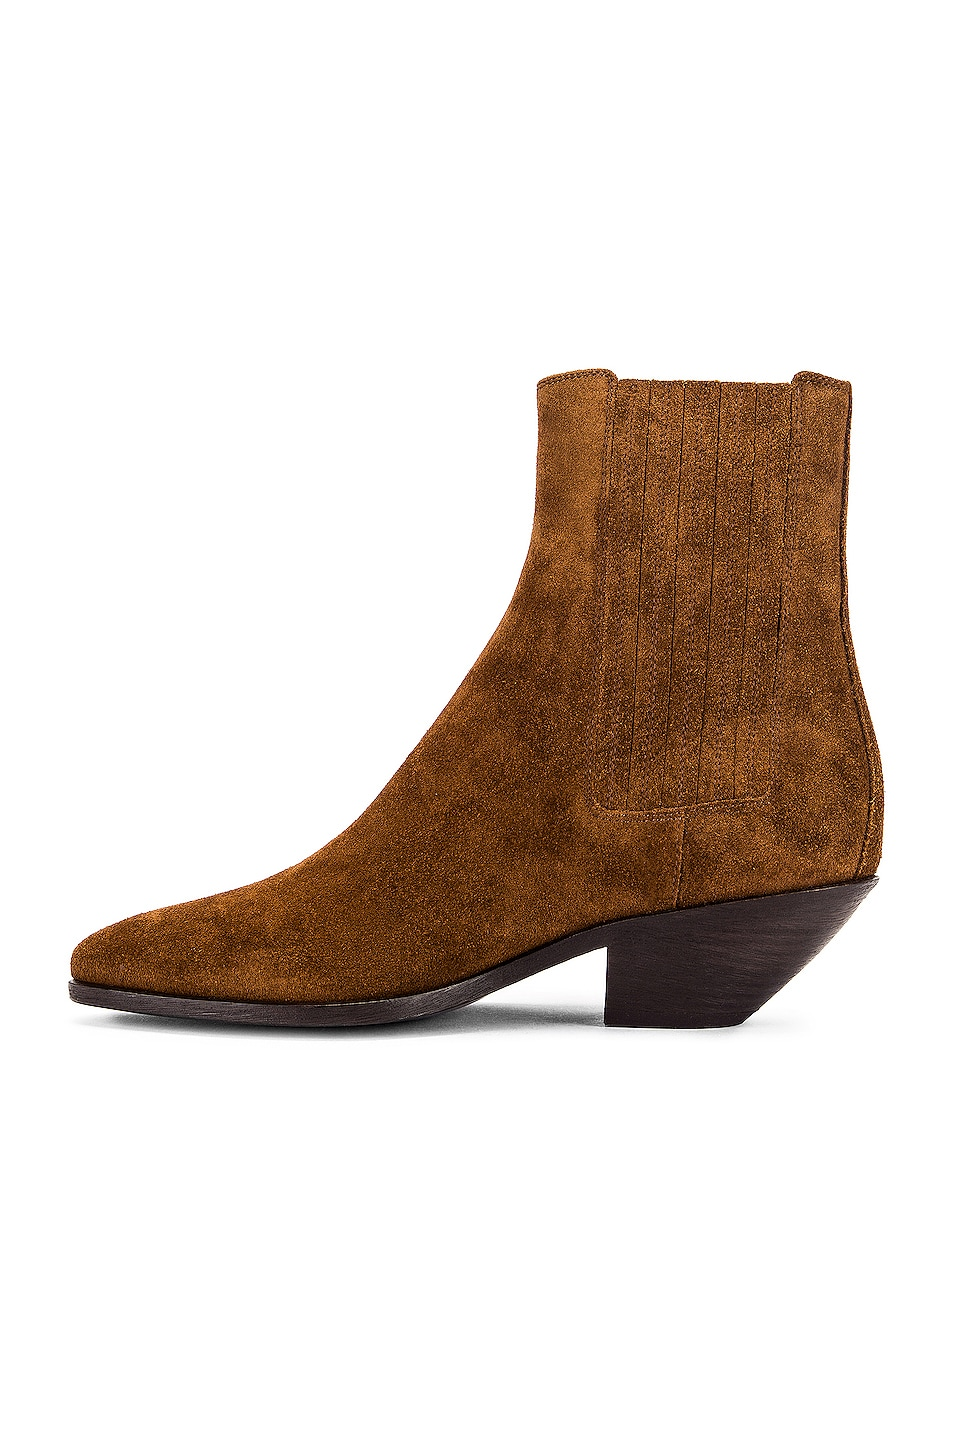 Image 5 of Saint Laurent West Chelsea Boots in Land